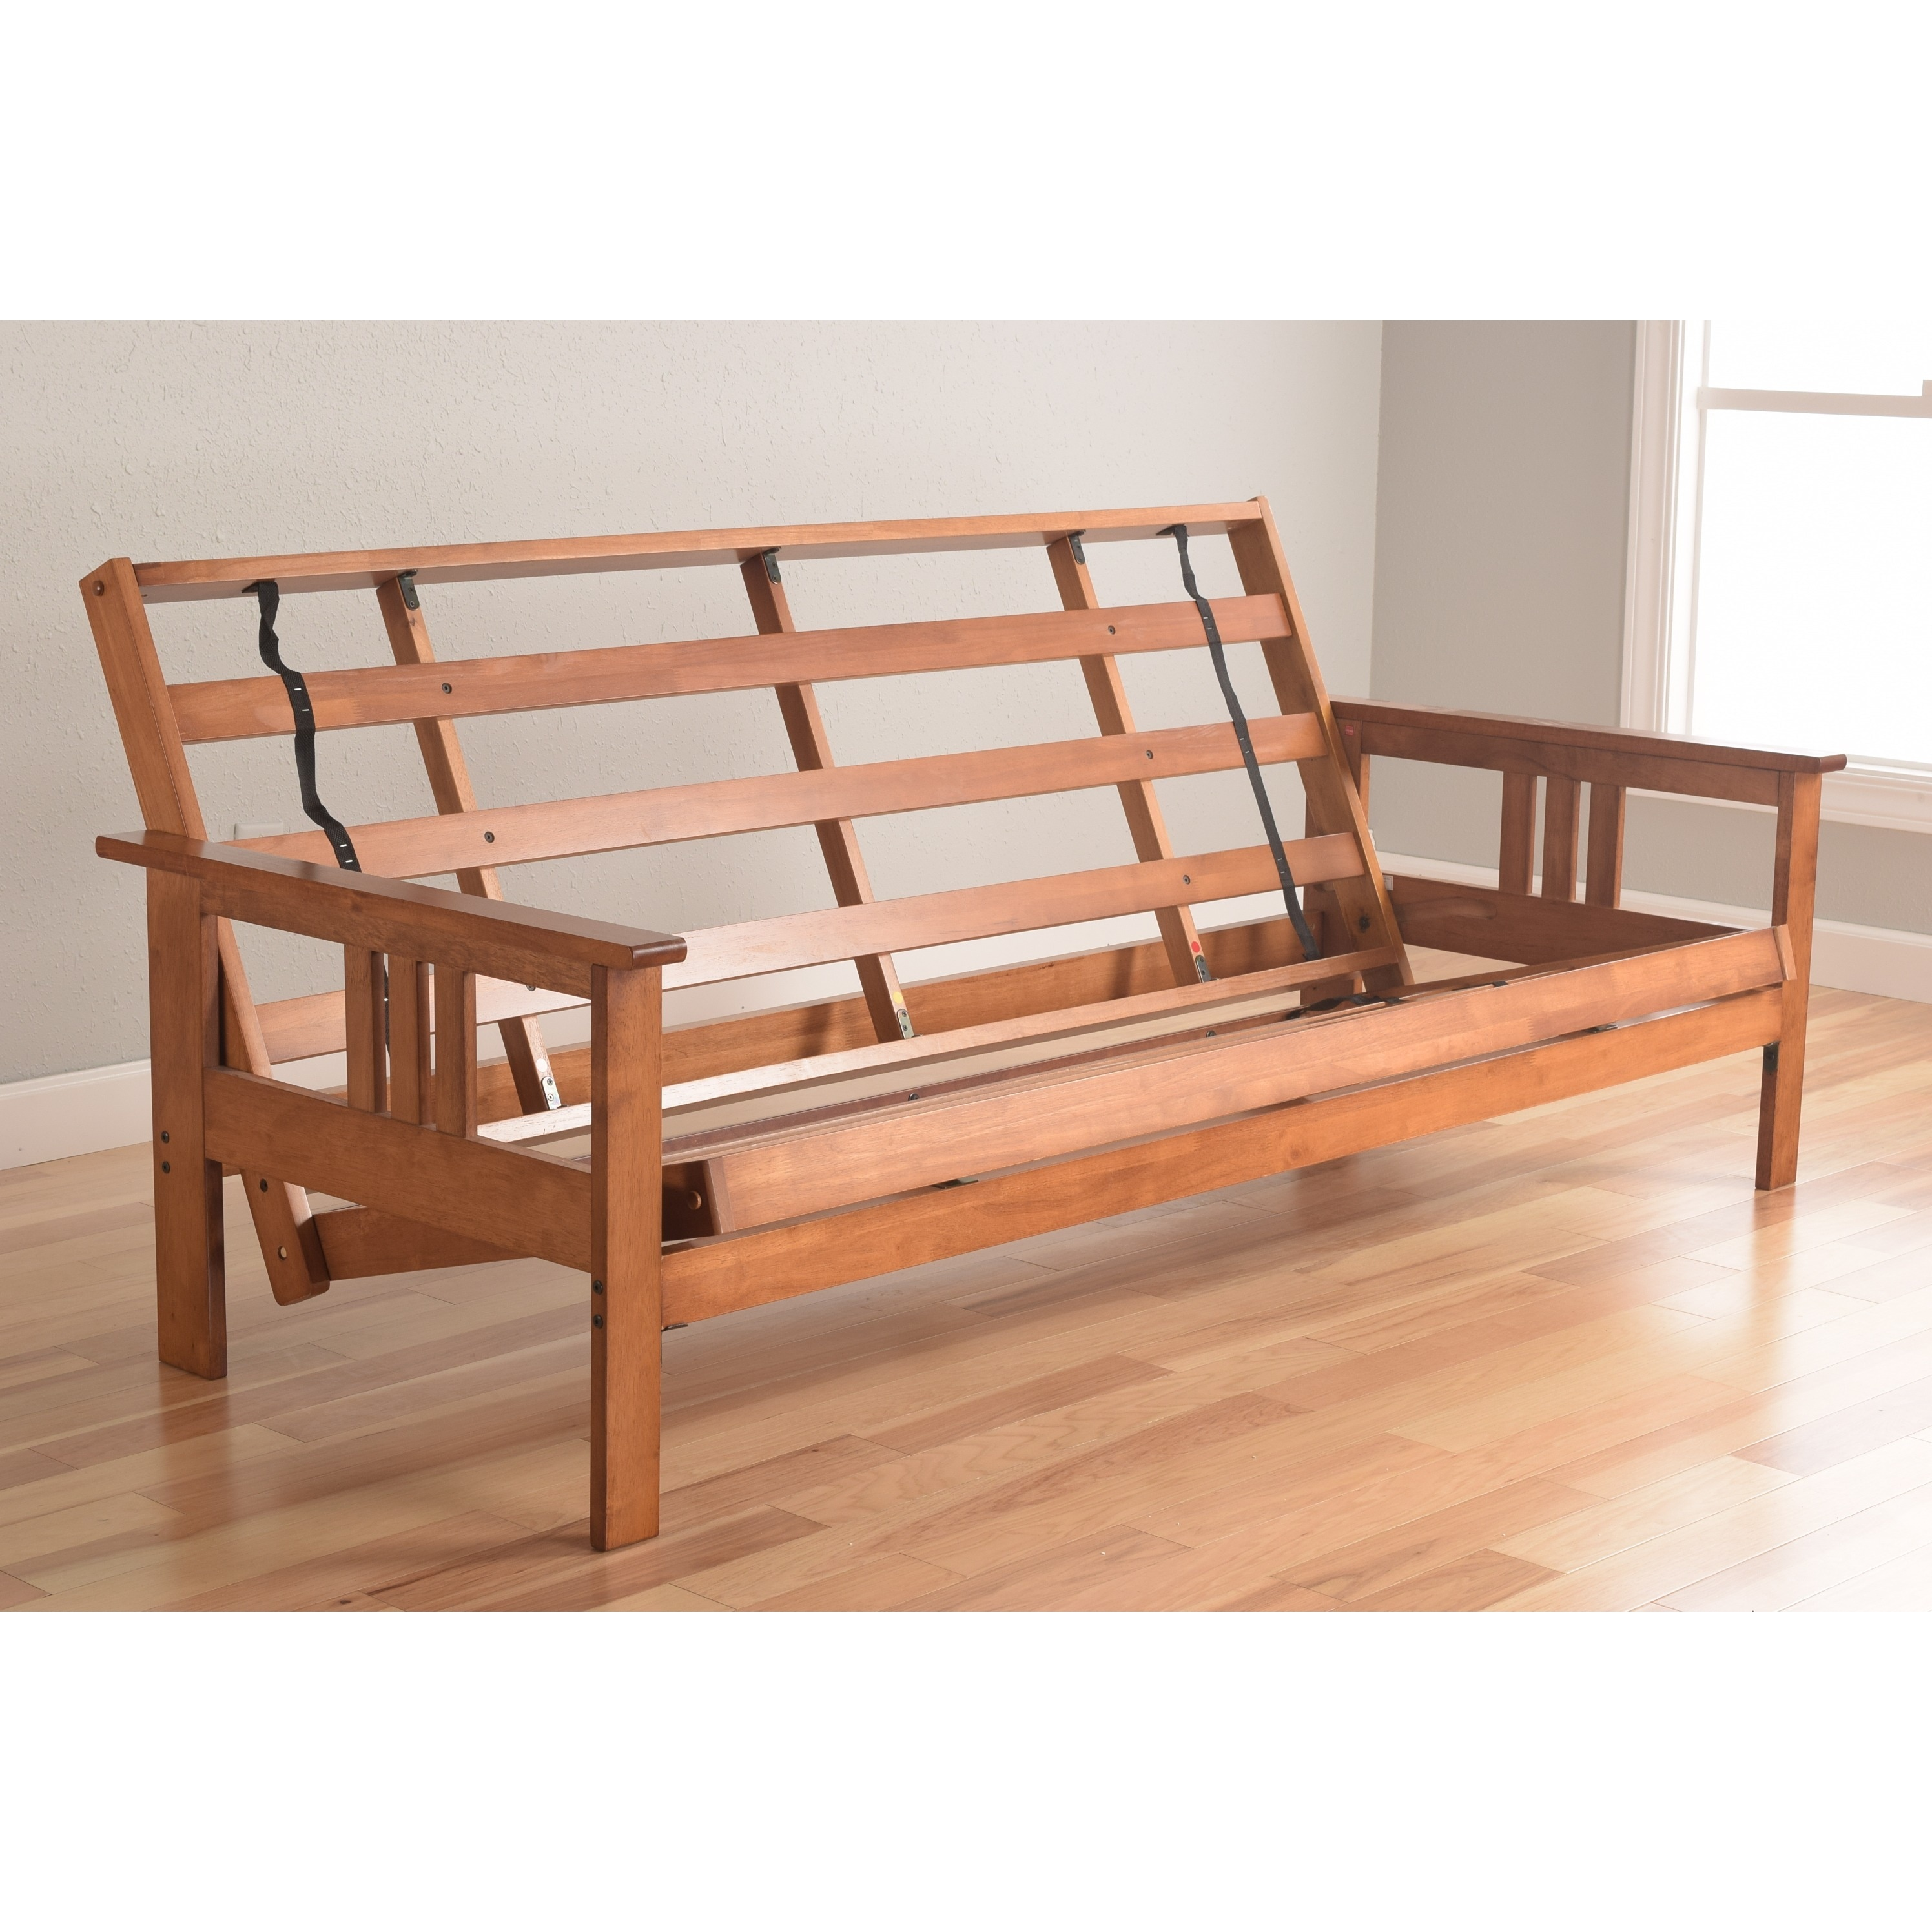 Shop Somette Beli Mont Multi Flex Honey Oak Full Size Wood